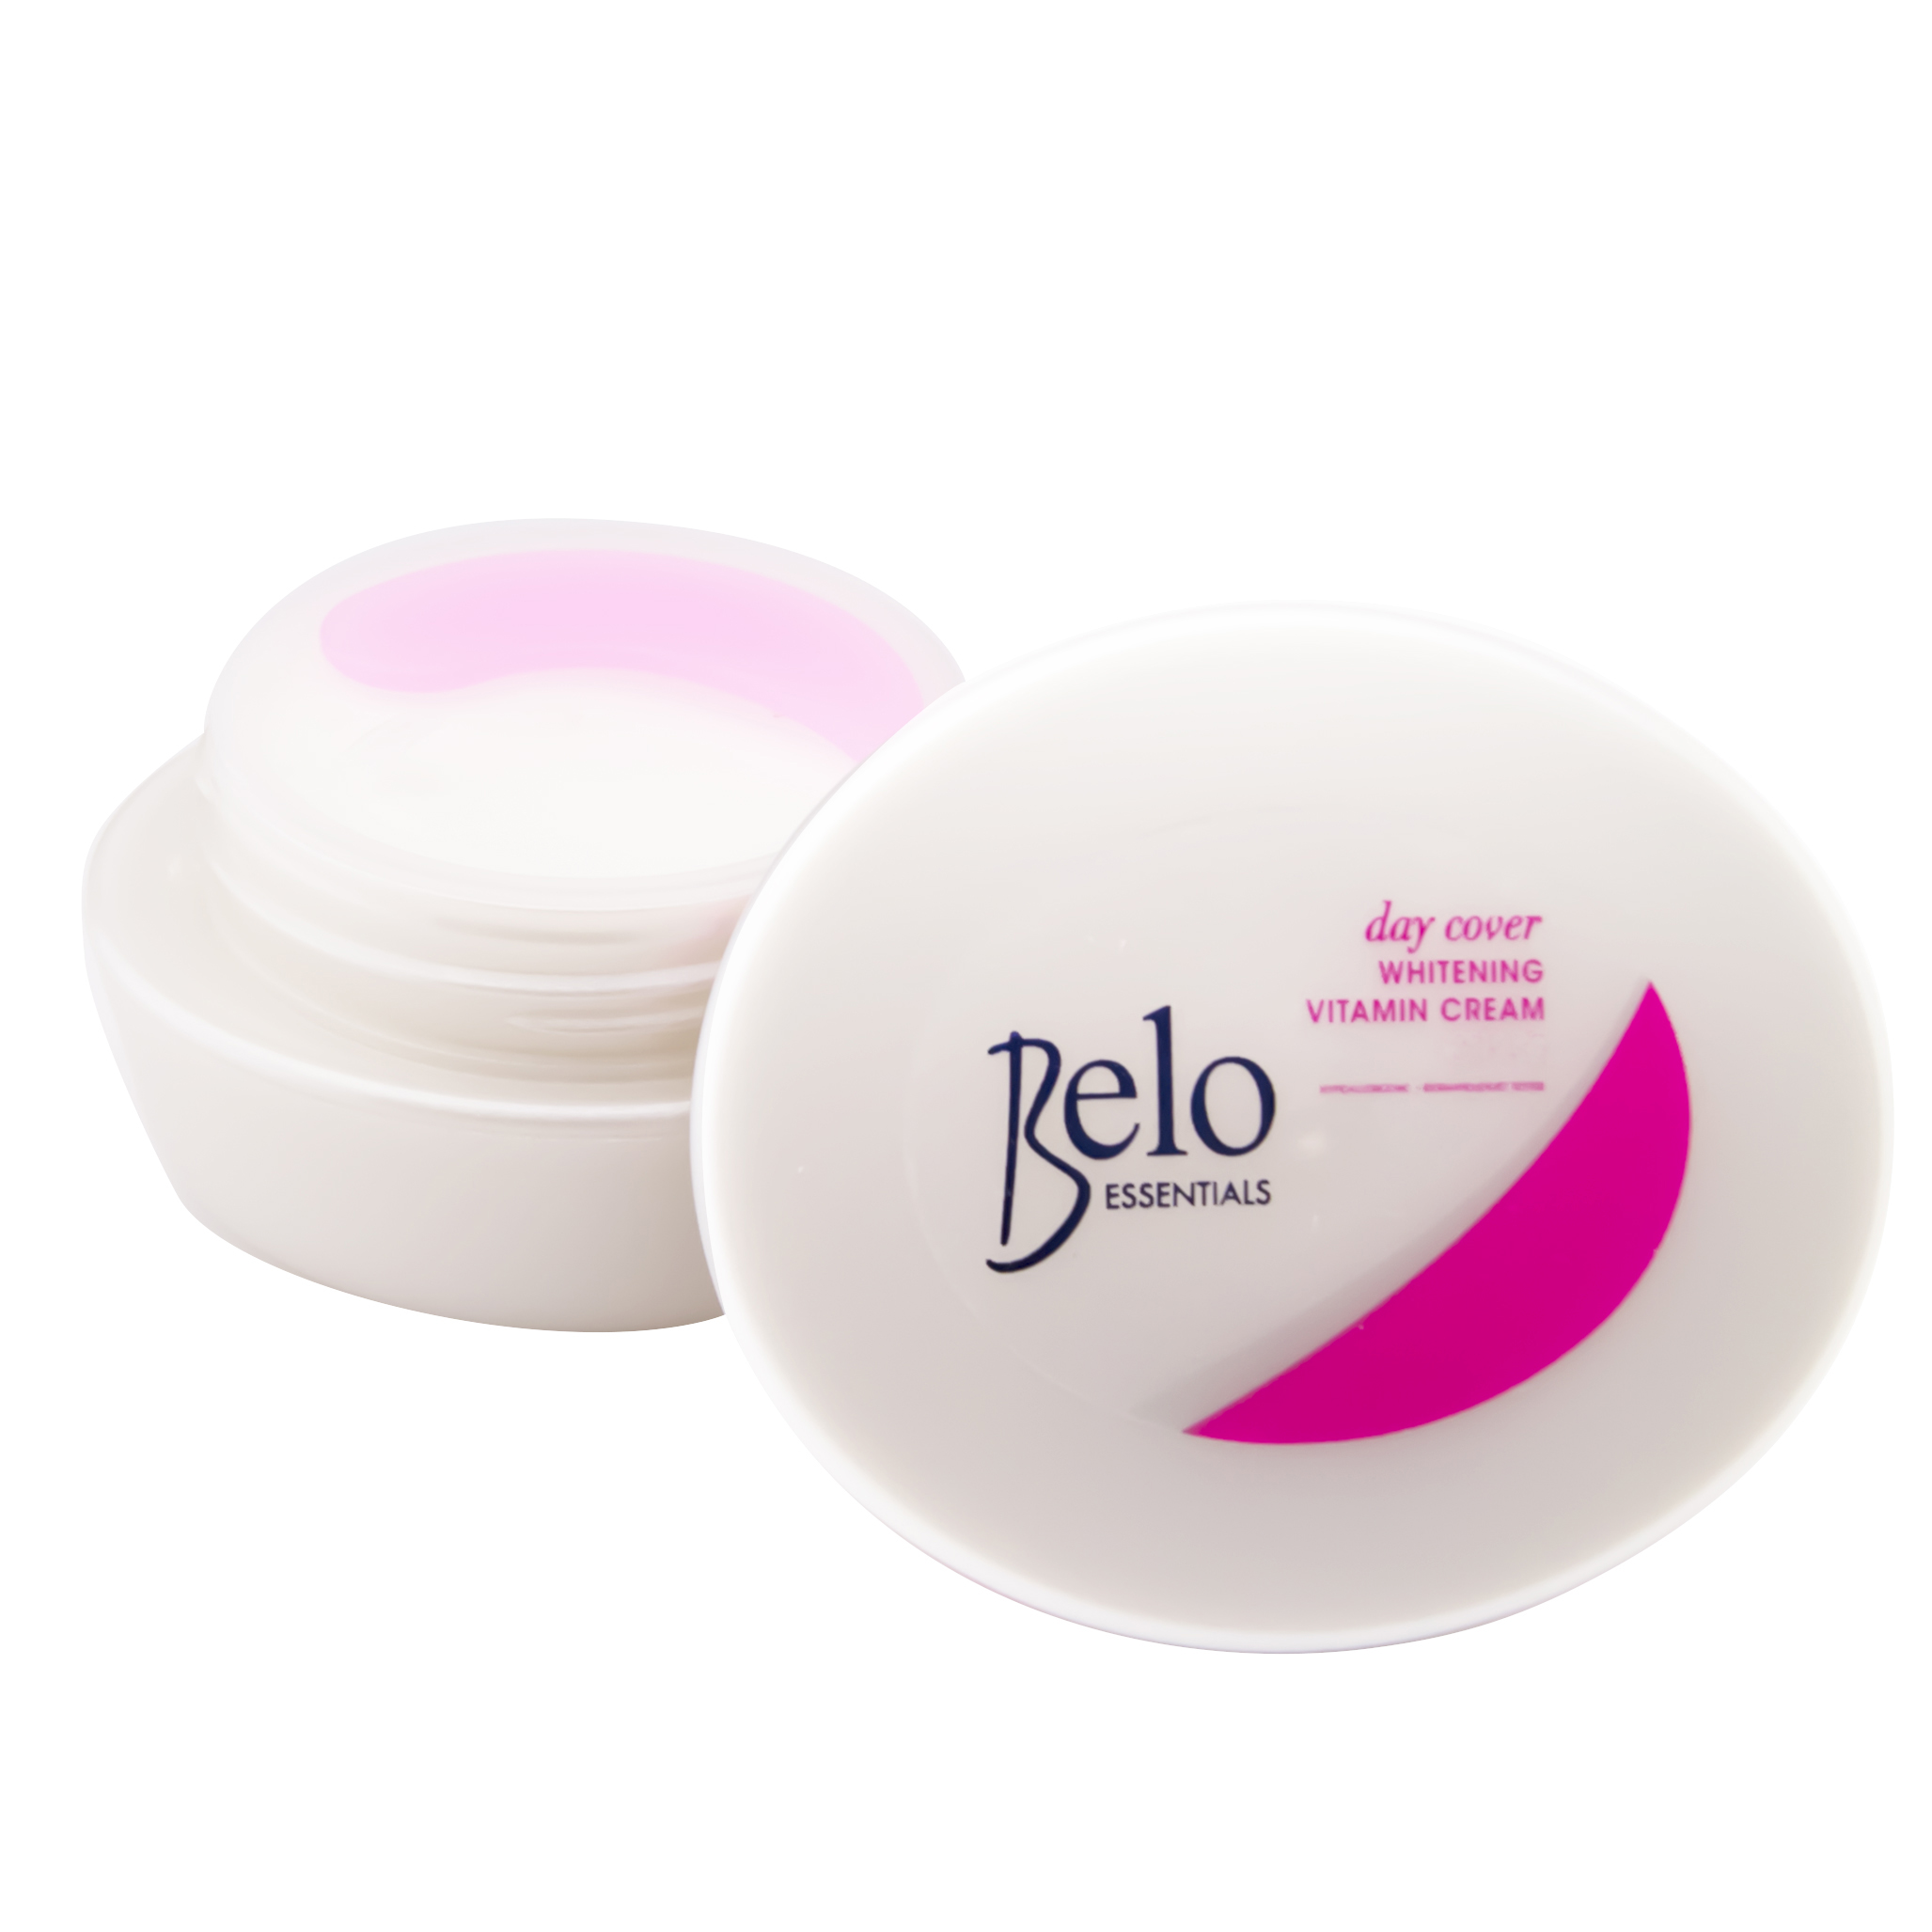 Belo Essentials Day Cover Whitening Vitamin Cream - 50g